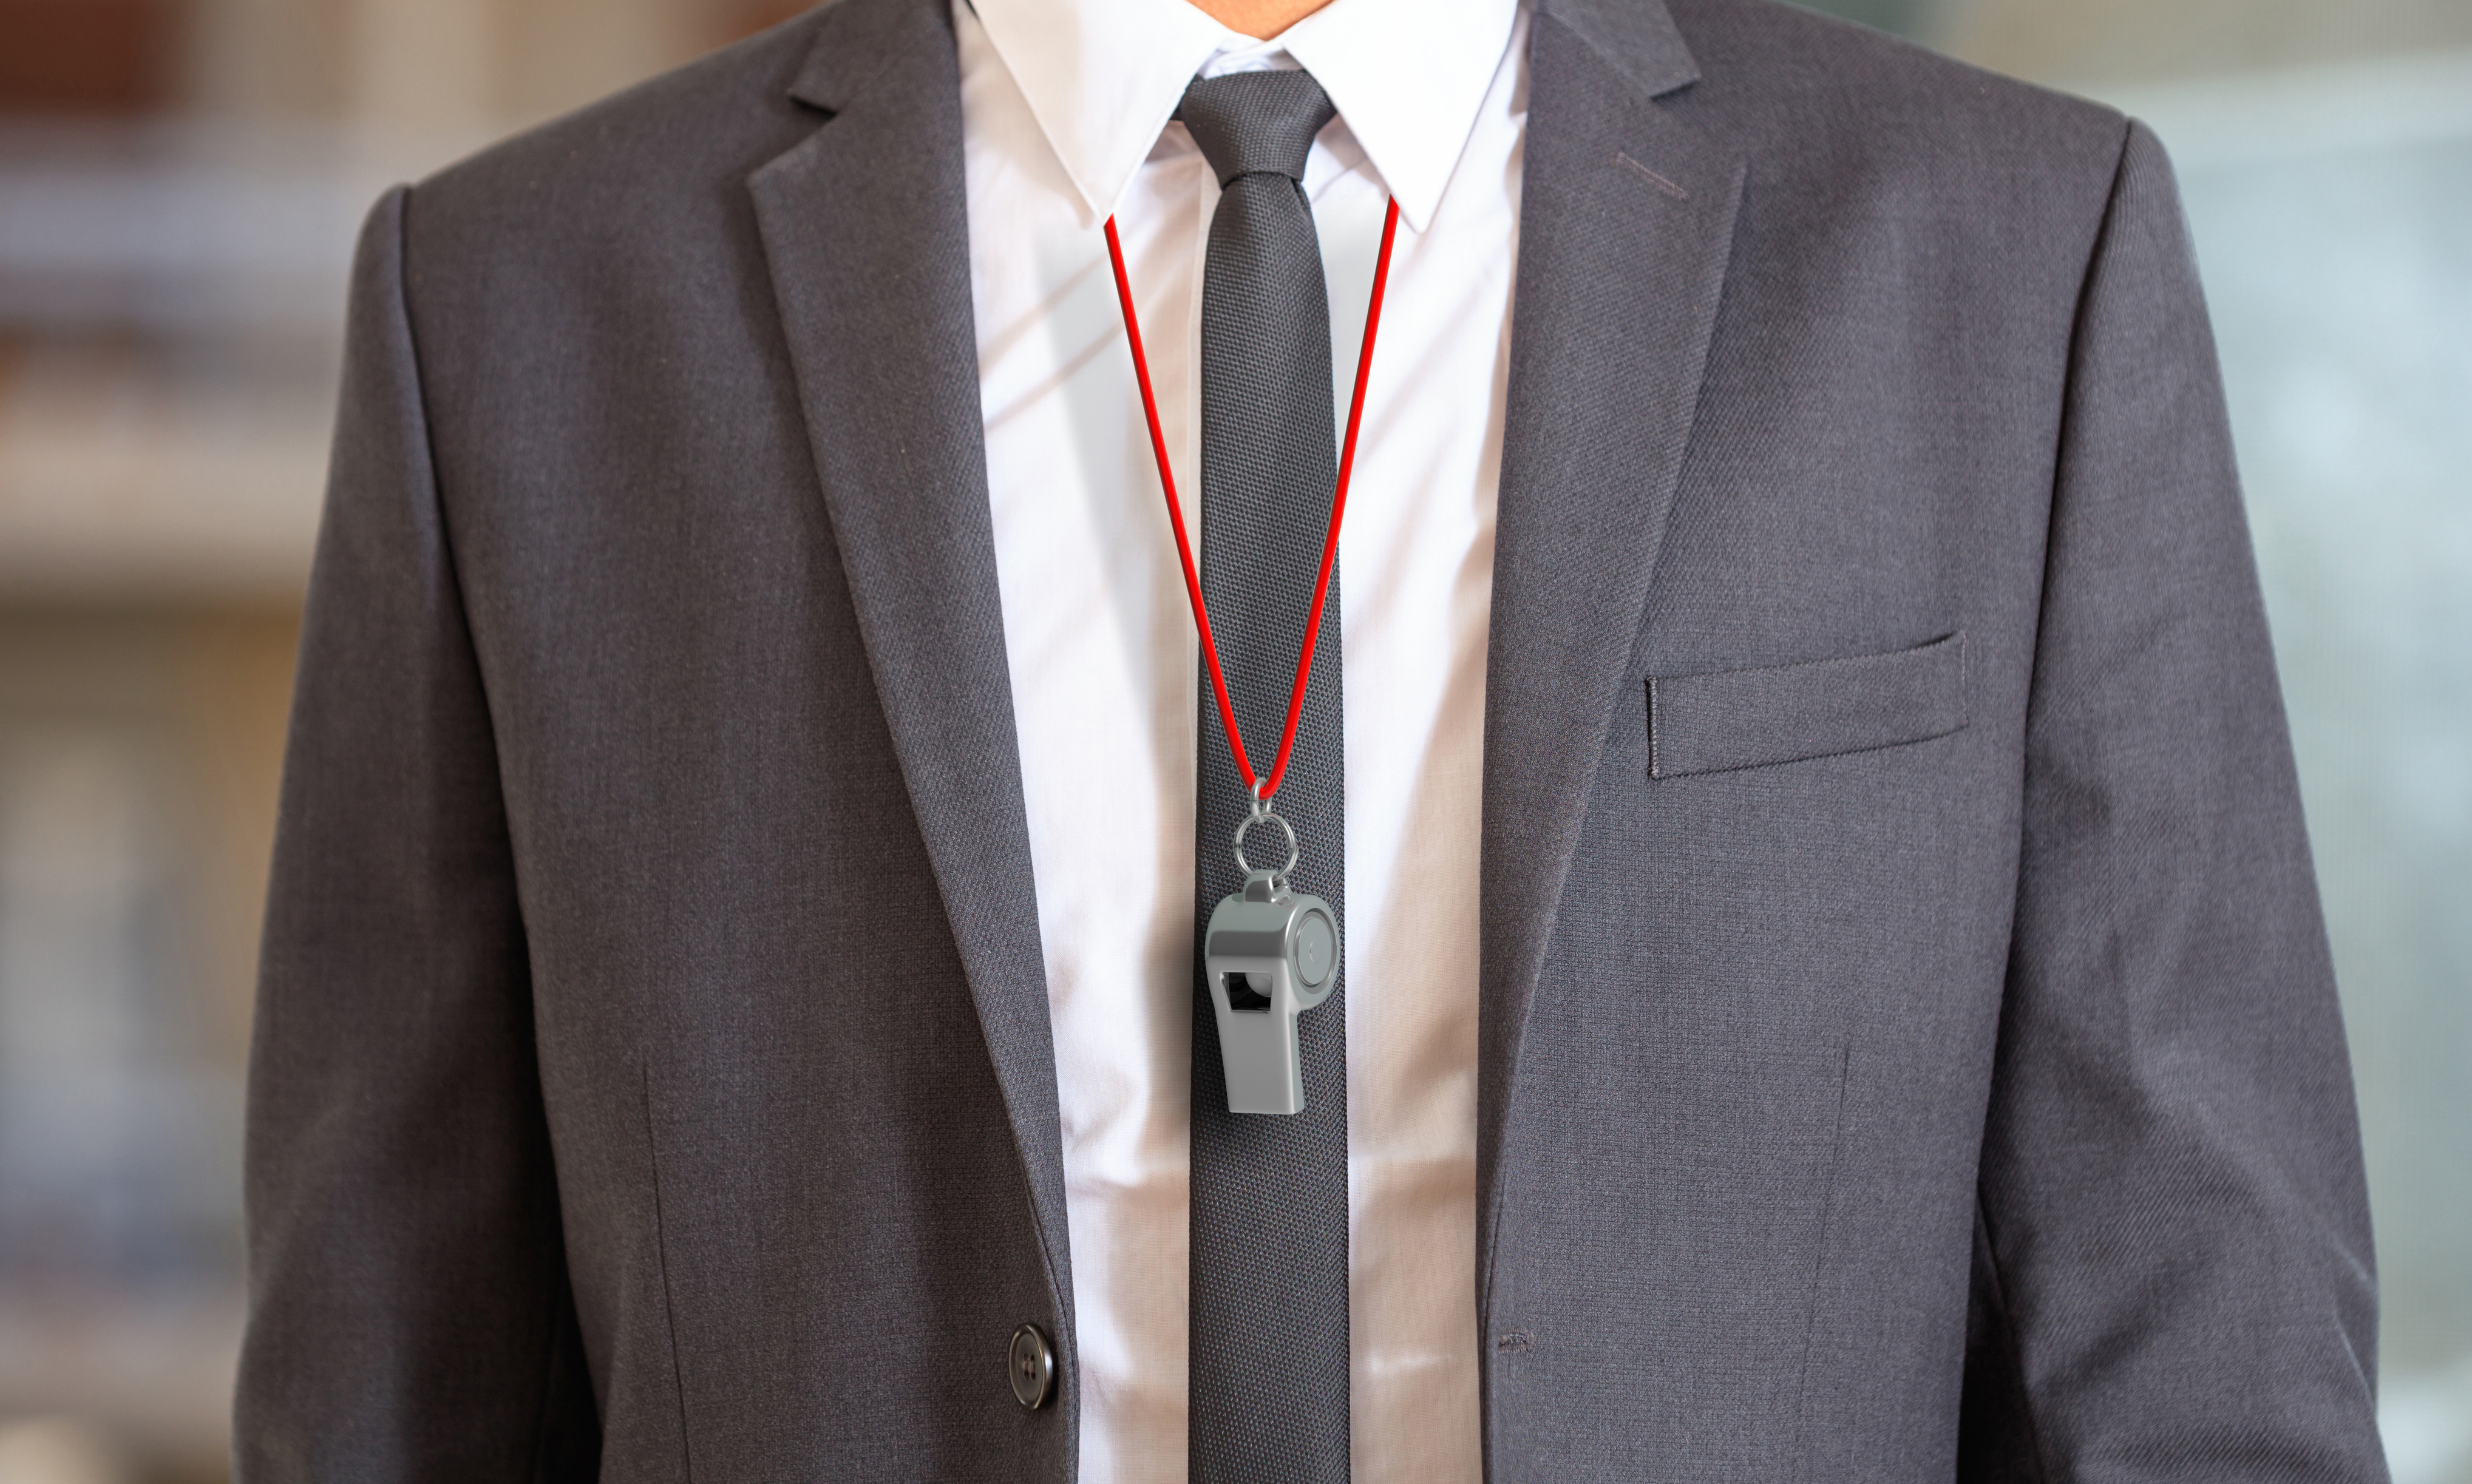 Man in suit wearing a whistle with red string. 3d illustration